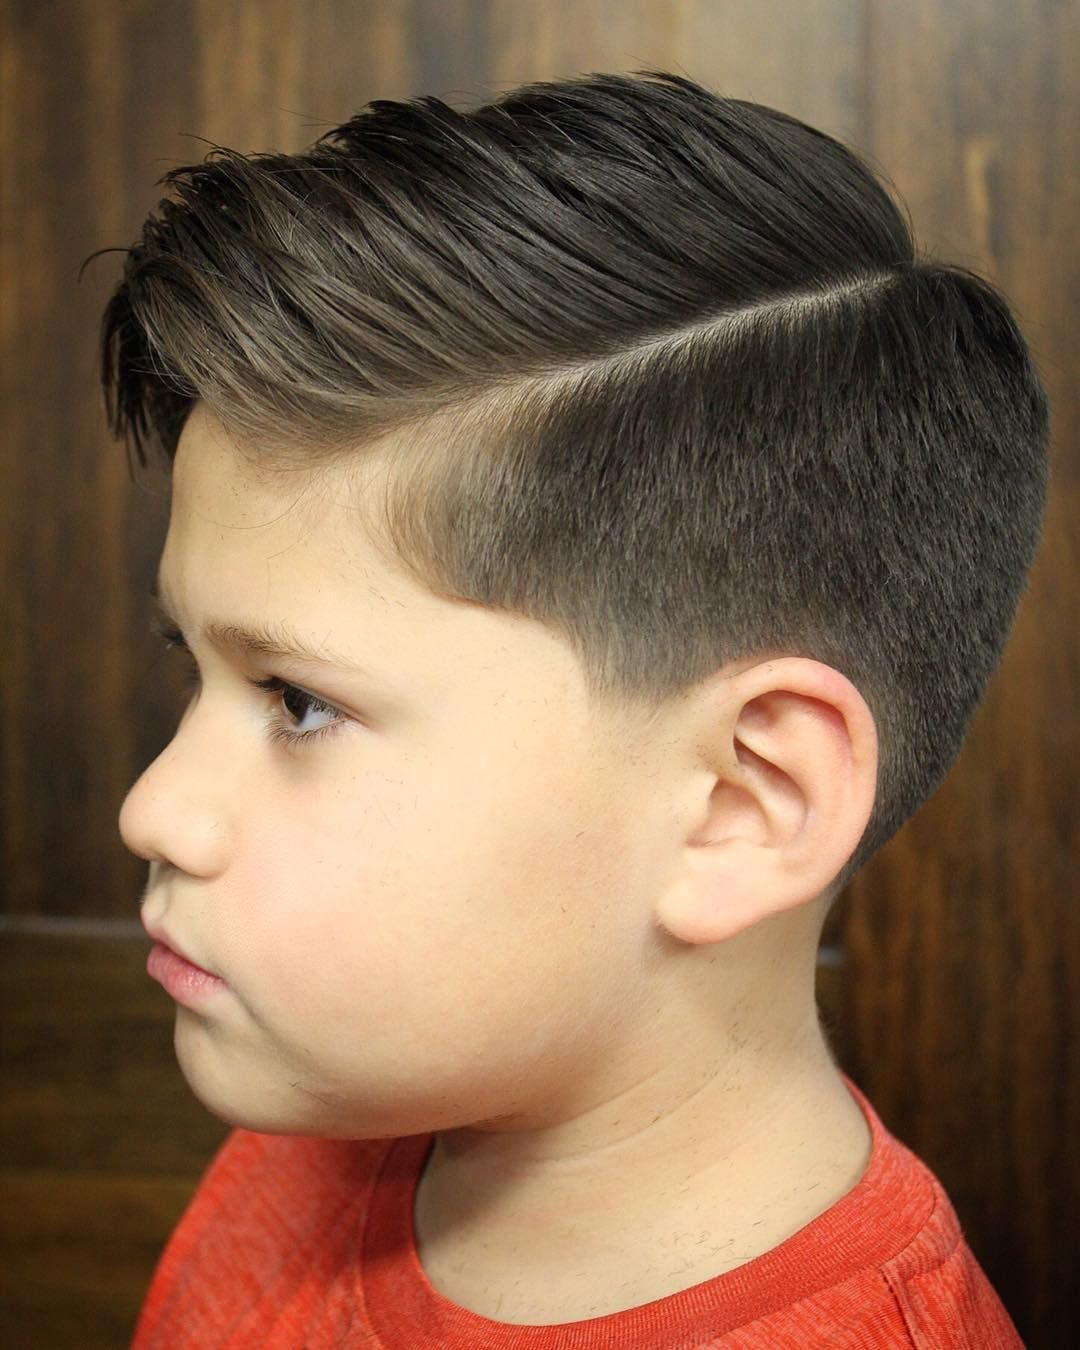 90+ Cool Haircuts for Kids for 2019   Cool boys haircuts, Trendy boys haircuts, Boys haircut styles